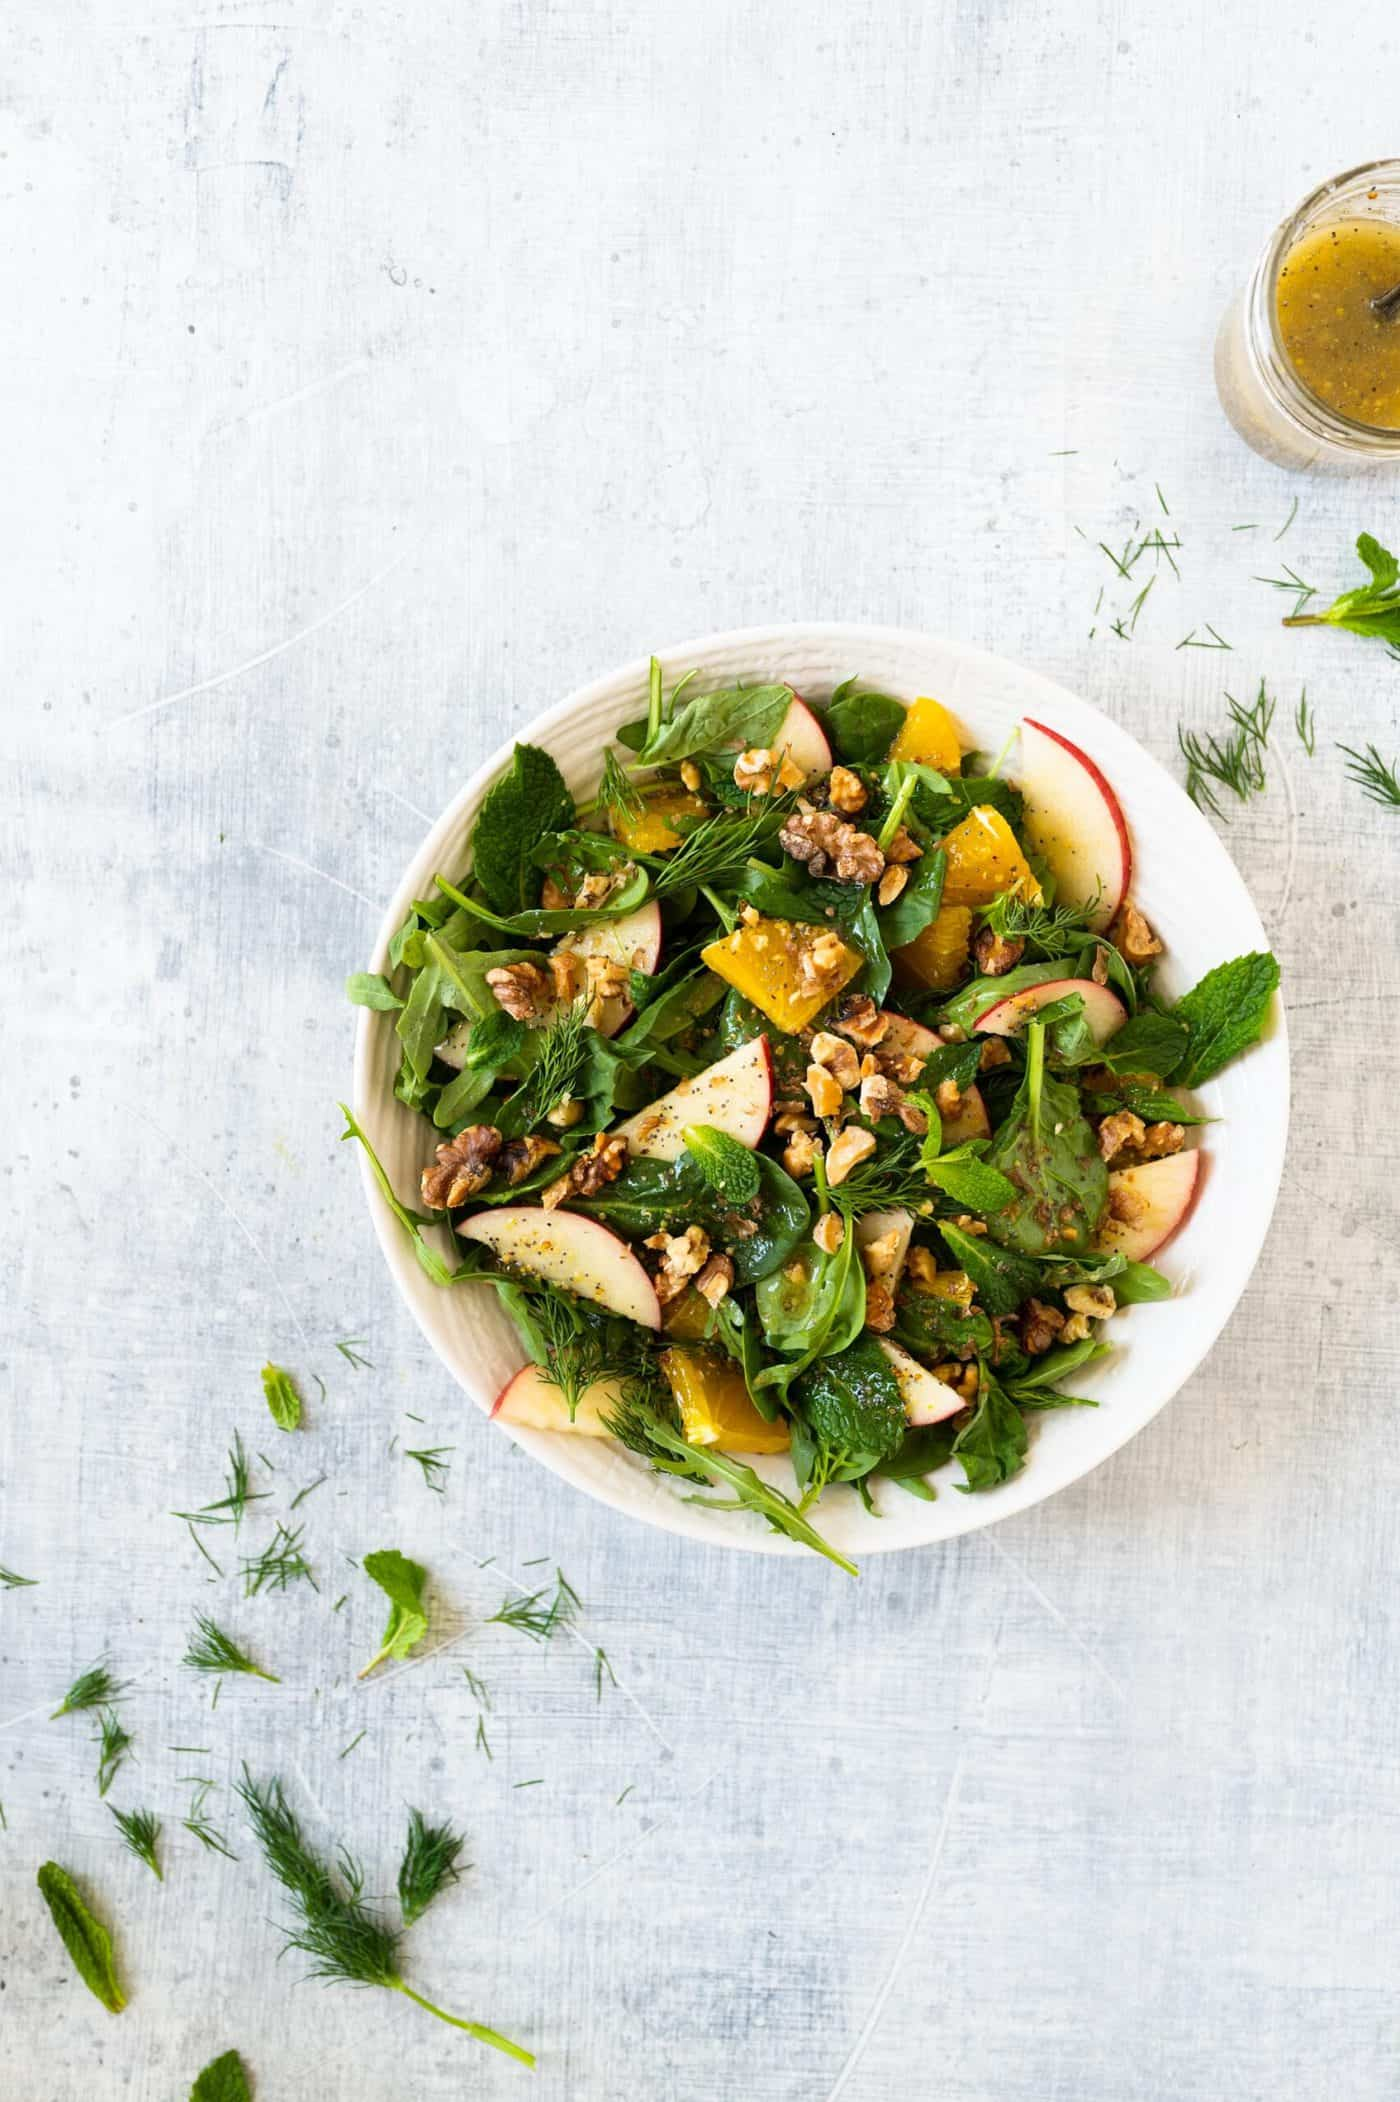 Pig and Quill Spring Herb Salad and Orange Poppyseed Vinaigrette Recipe